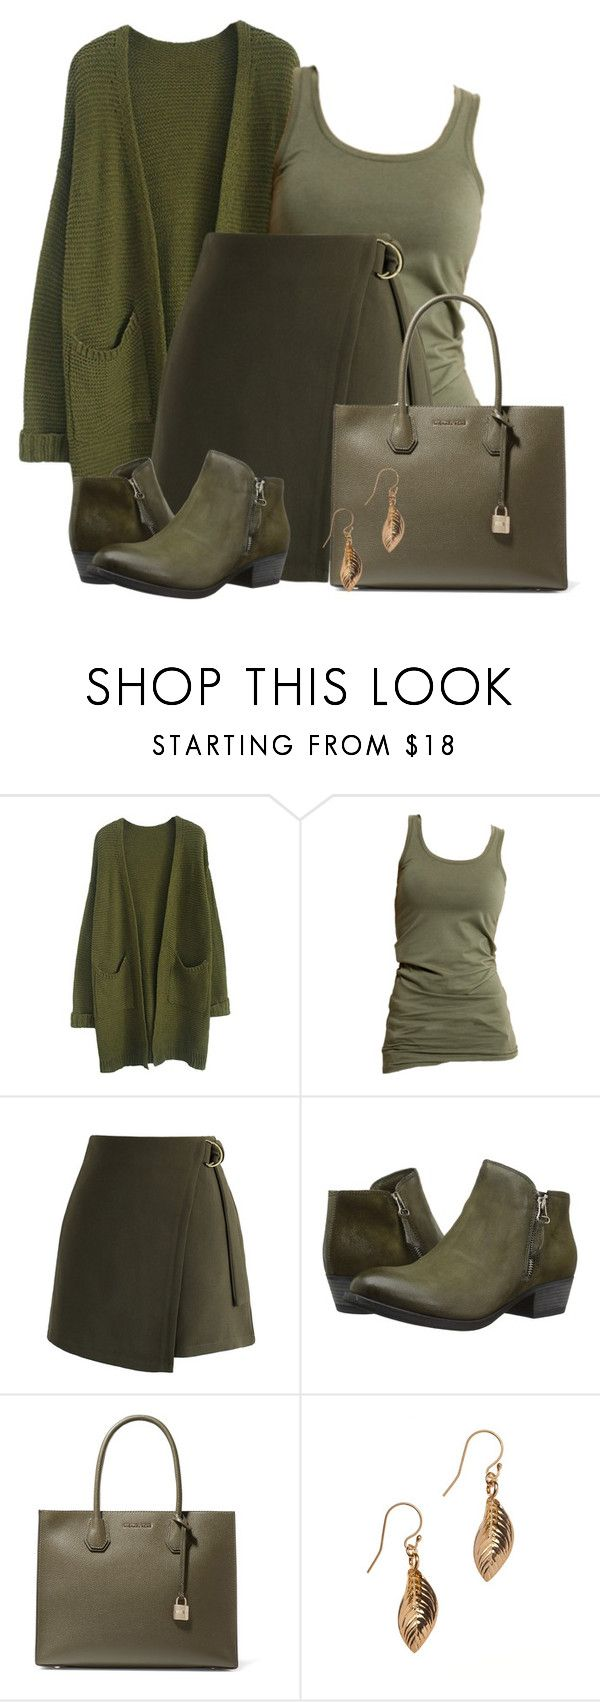 """Army Green"" by colierollers ❤ liked on Polyvore featuring Vila Milano, Chicwish, Miz Mooz, MICHAEL Michael Kors and Alicia Marilyn Designs"